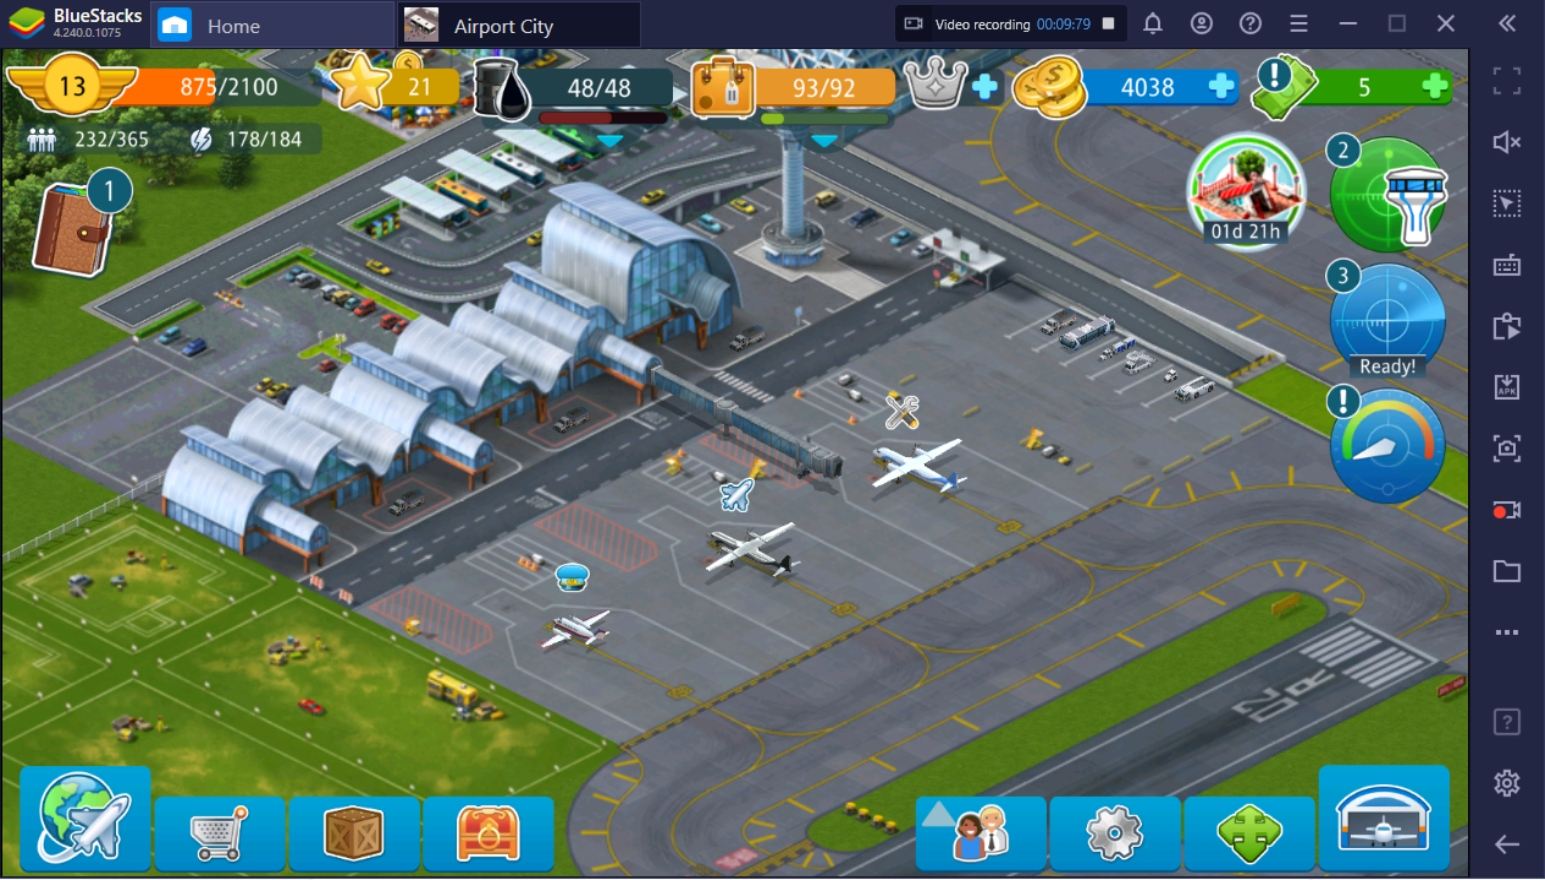 How to Play Airport City on PC with BlueStacks